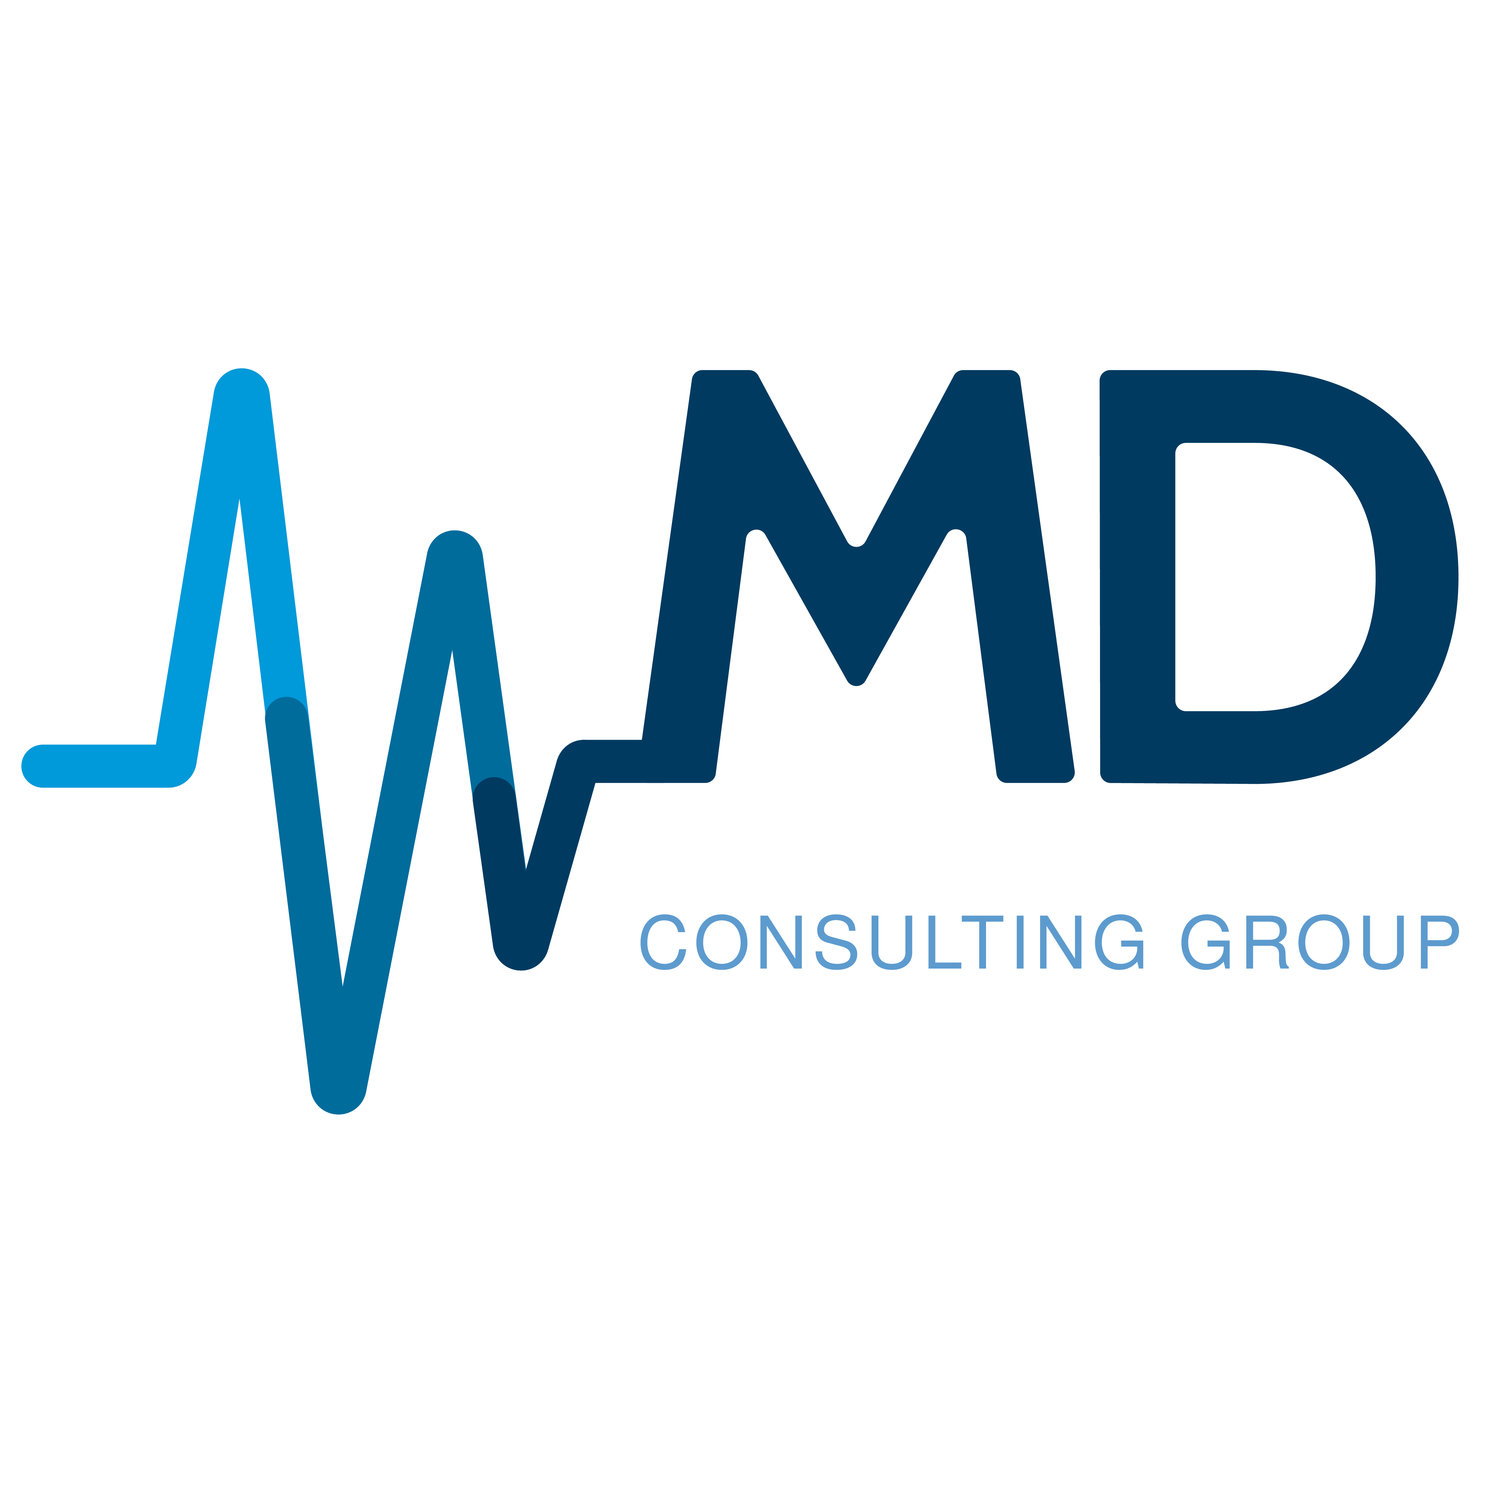 MD & CO Consulting Group